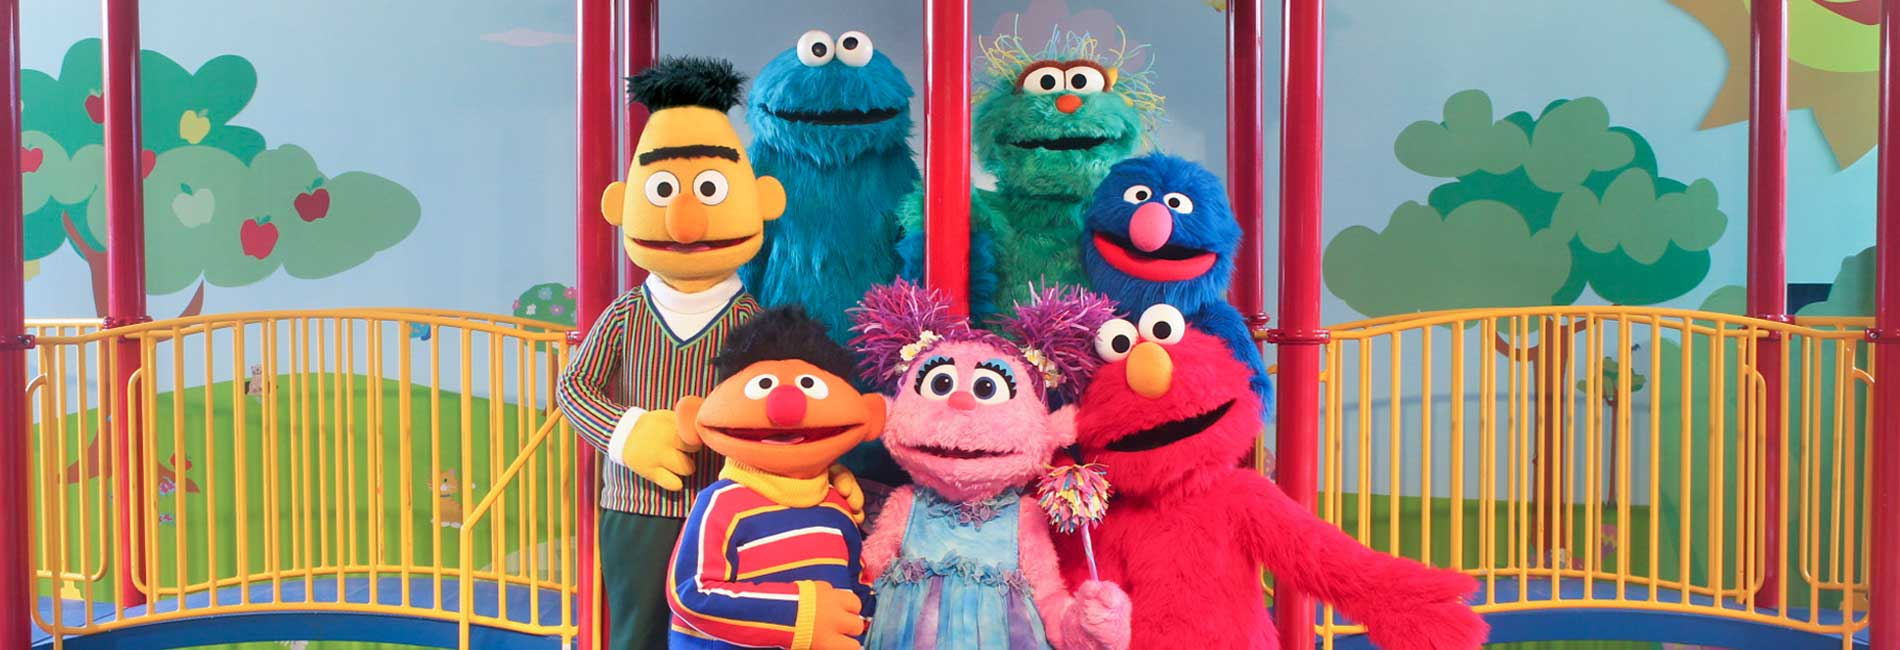 Bert, Ernie, Cookie Monster, Abby Cadabby, Rosita, Grover and Elmo in Let's Play Together - live on stage at Sesame Place theme park